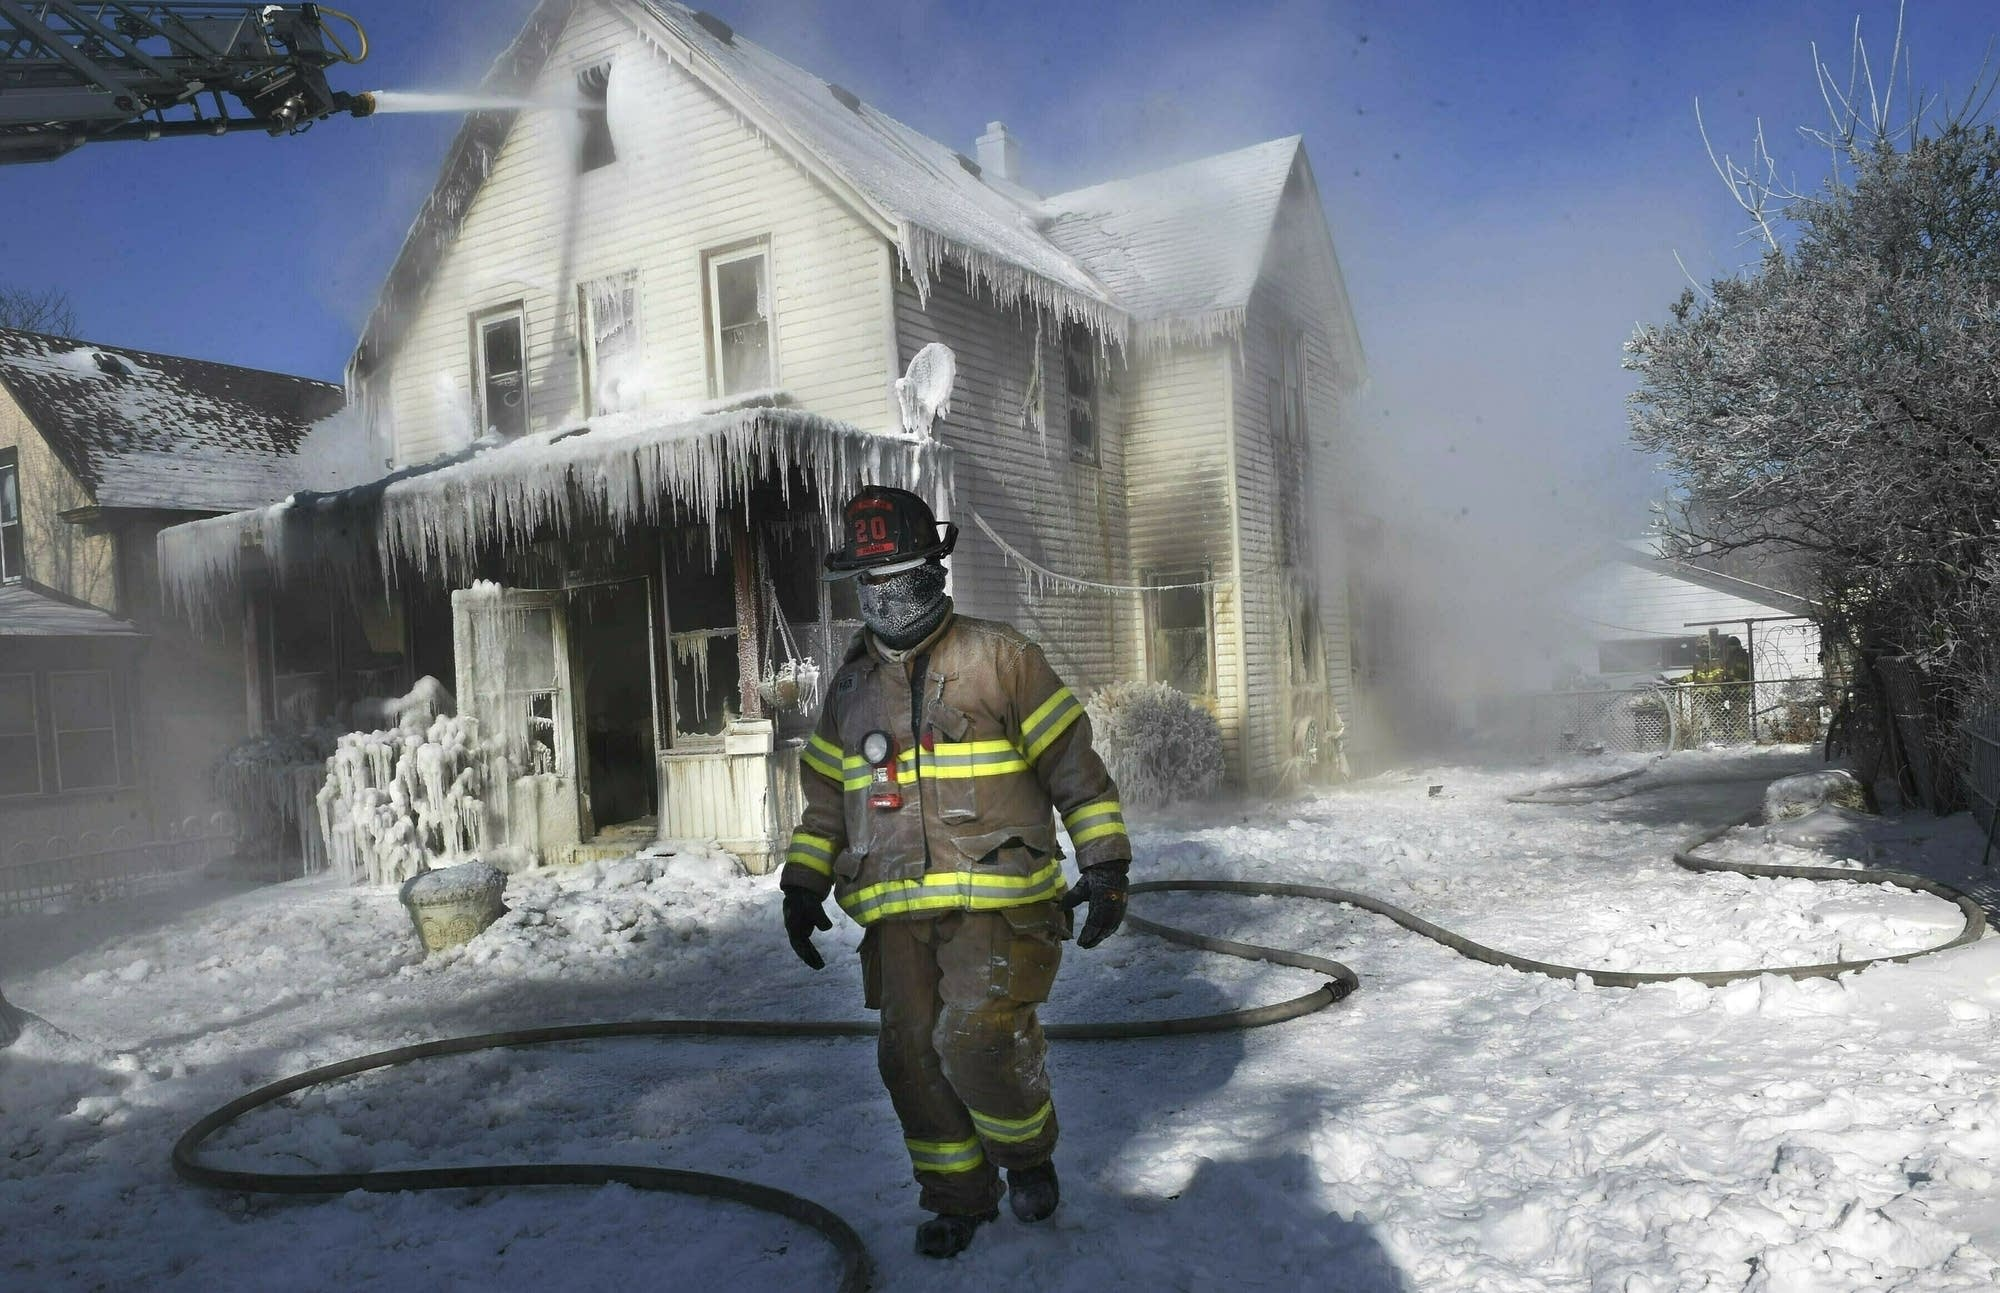 A firefighter walks past an ice-encrusted home